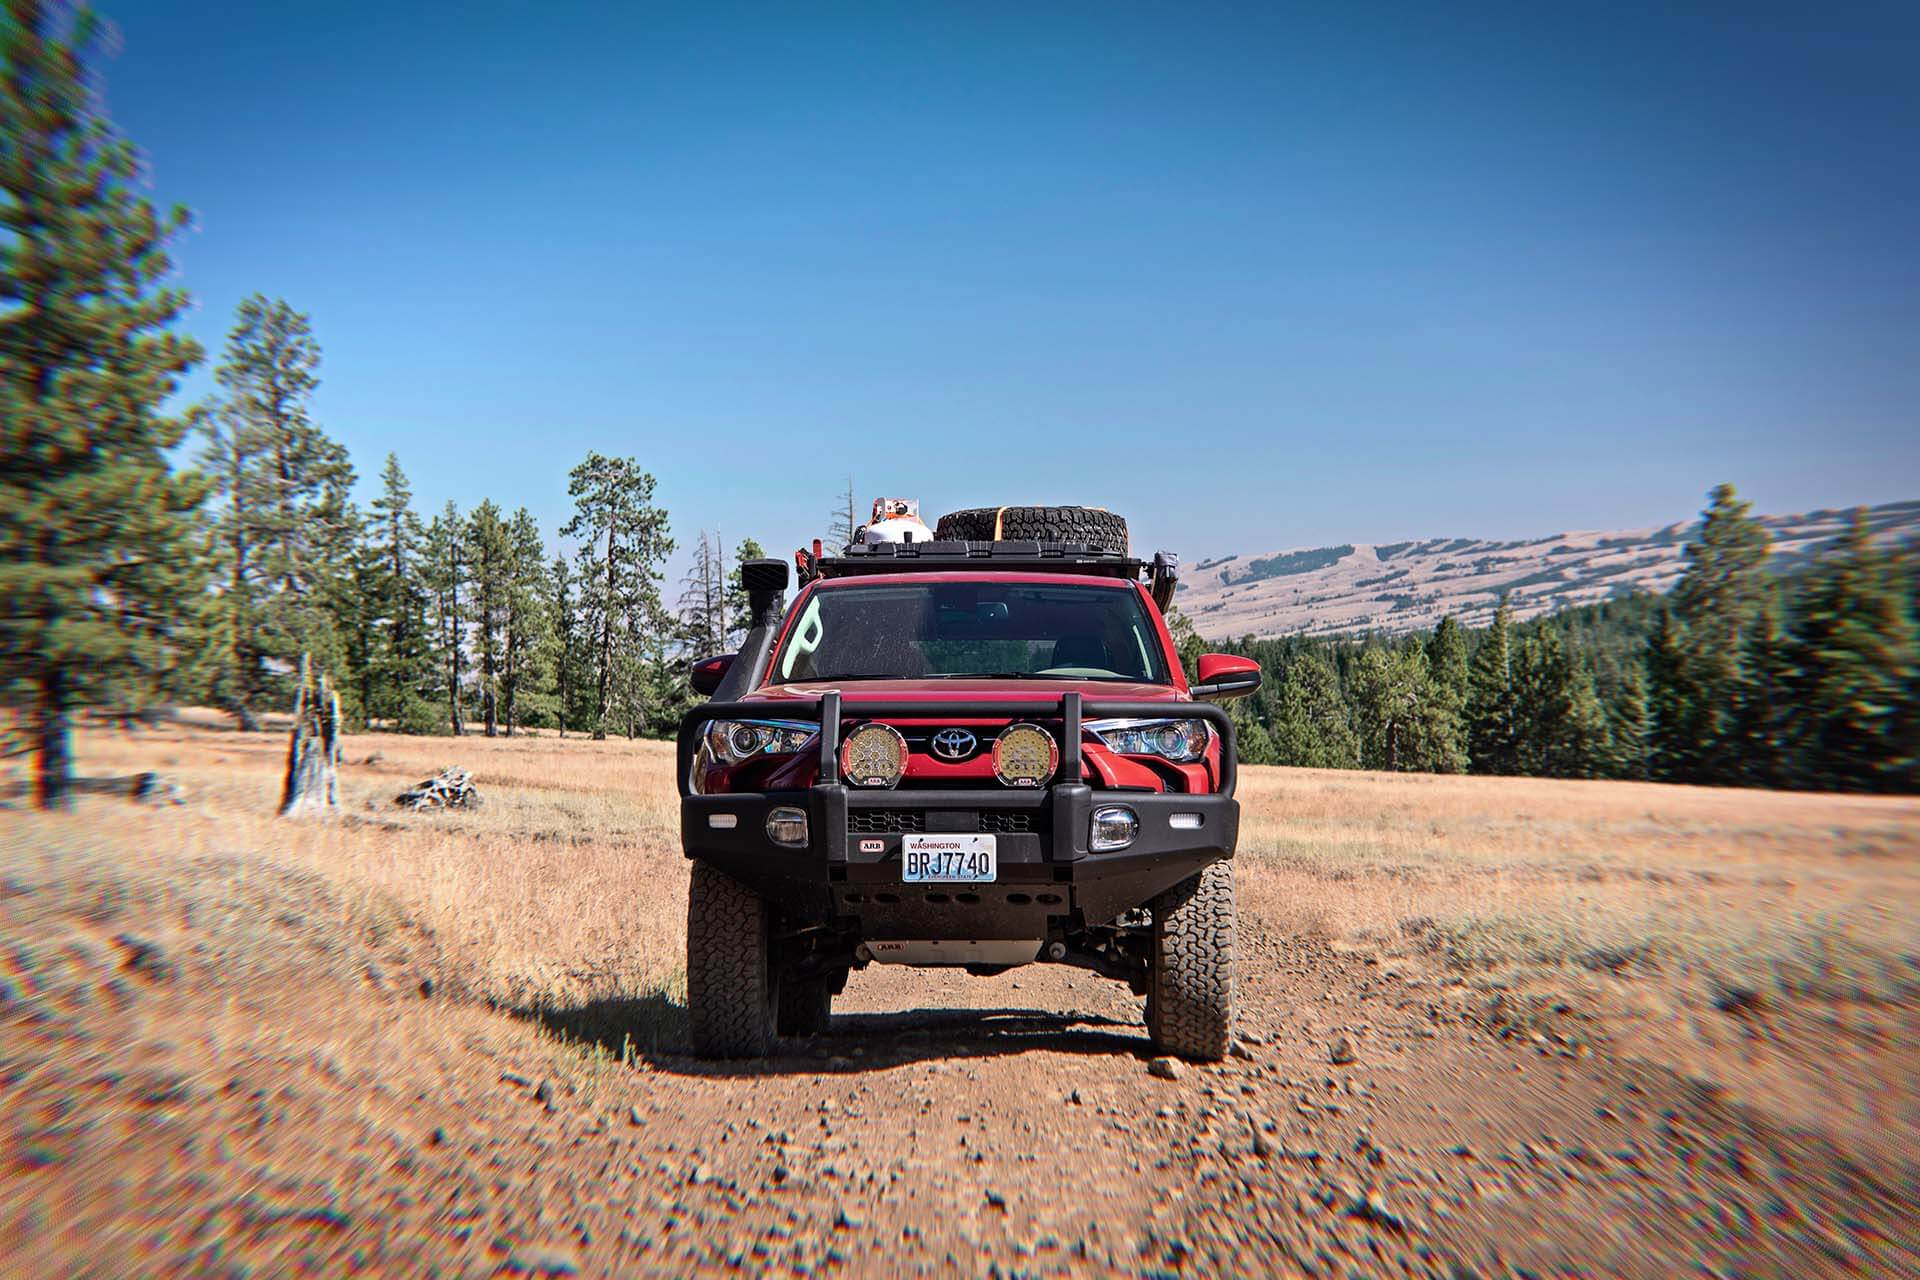 Toyota 4Runner at REd Bald Mountain on dirt road